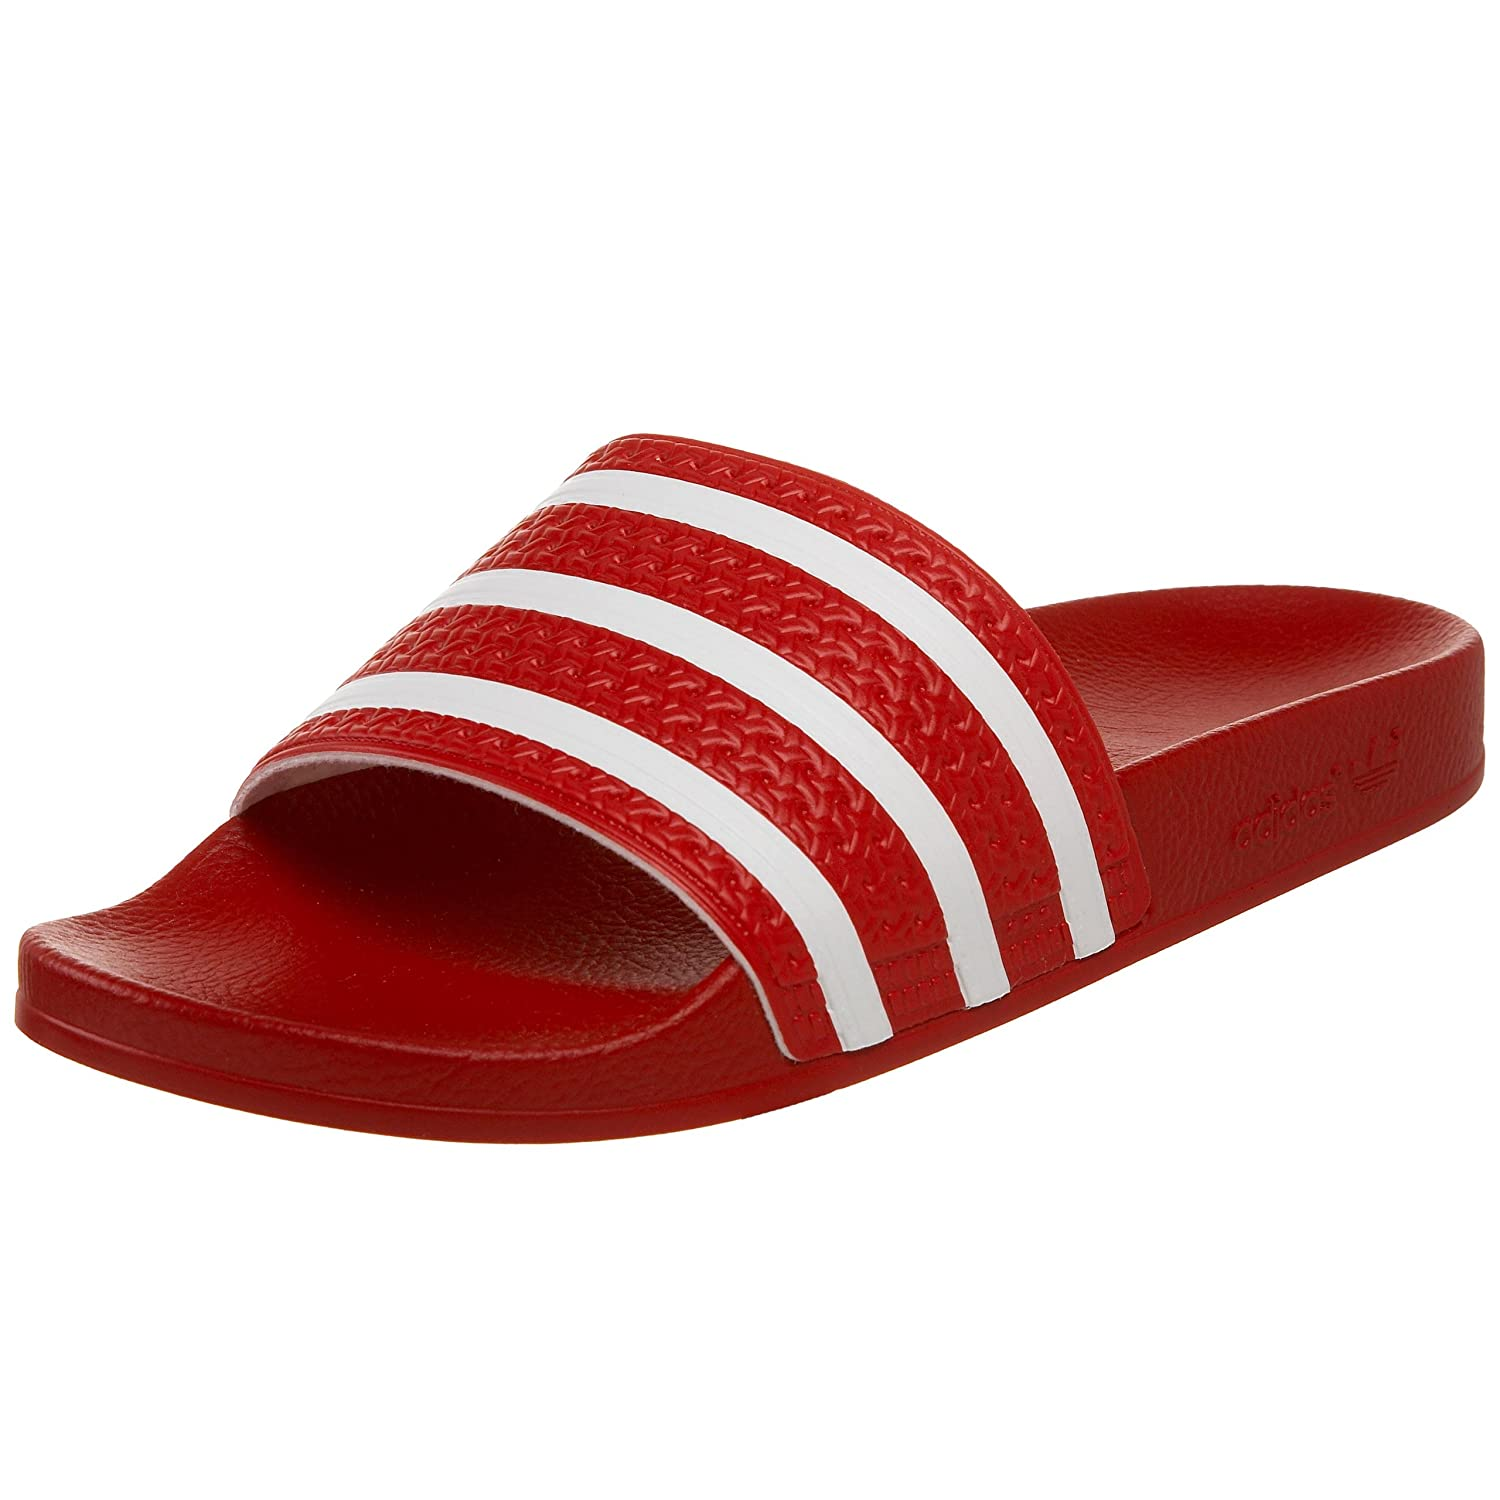 adidas Men's Adilette Slide Sandal B002E19YE6 15 D(M) US|Scarlet Red/White